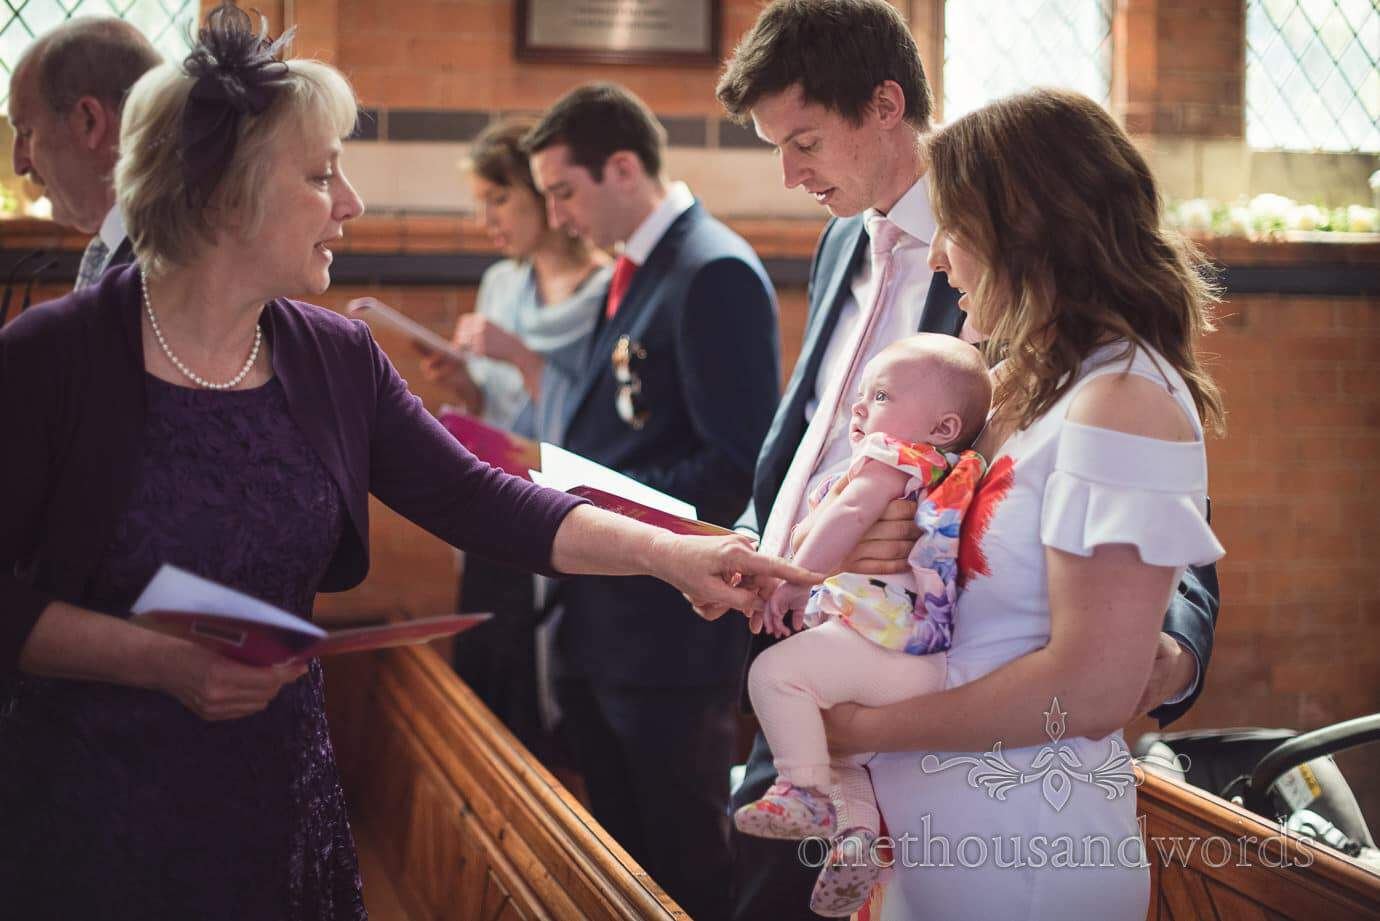 Wedding guest plays with baby at church wedding ceremony in Leicestershire